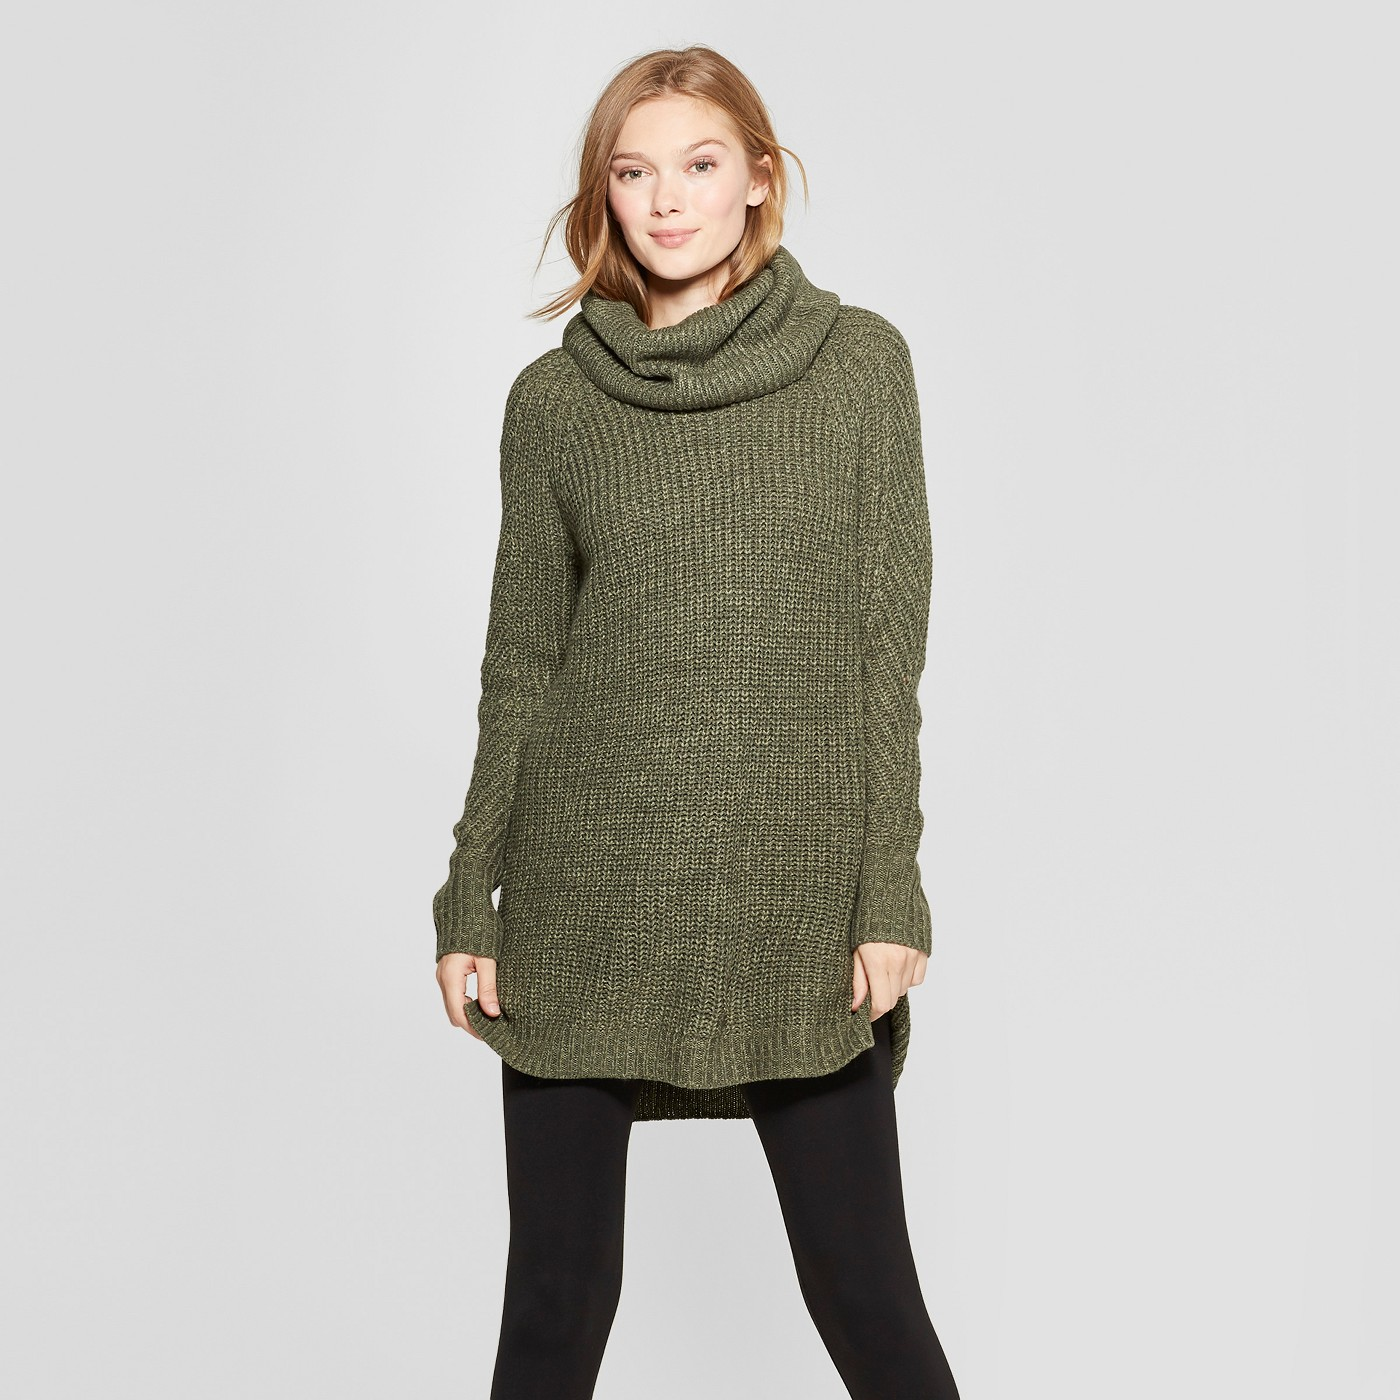 "Women's Cozy Neck Pullover - A New Dayâ""¢ - image 1 of 3"